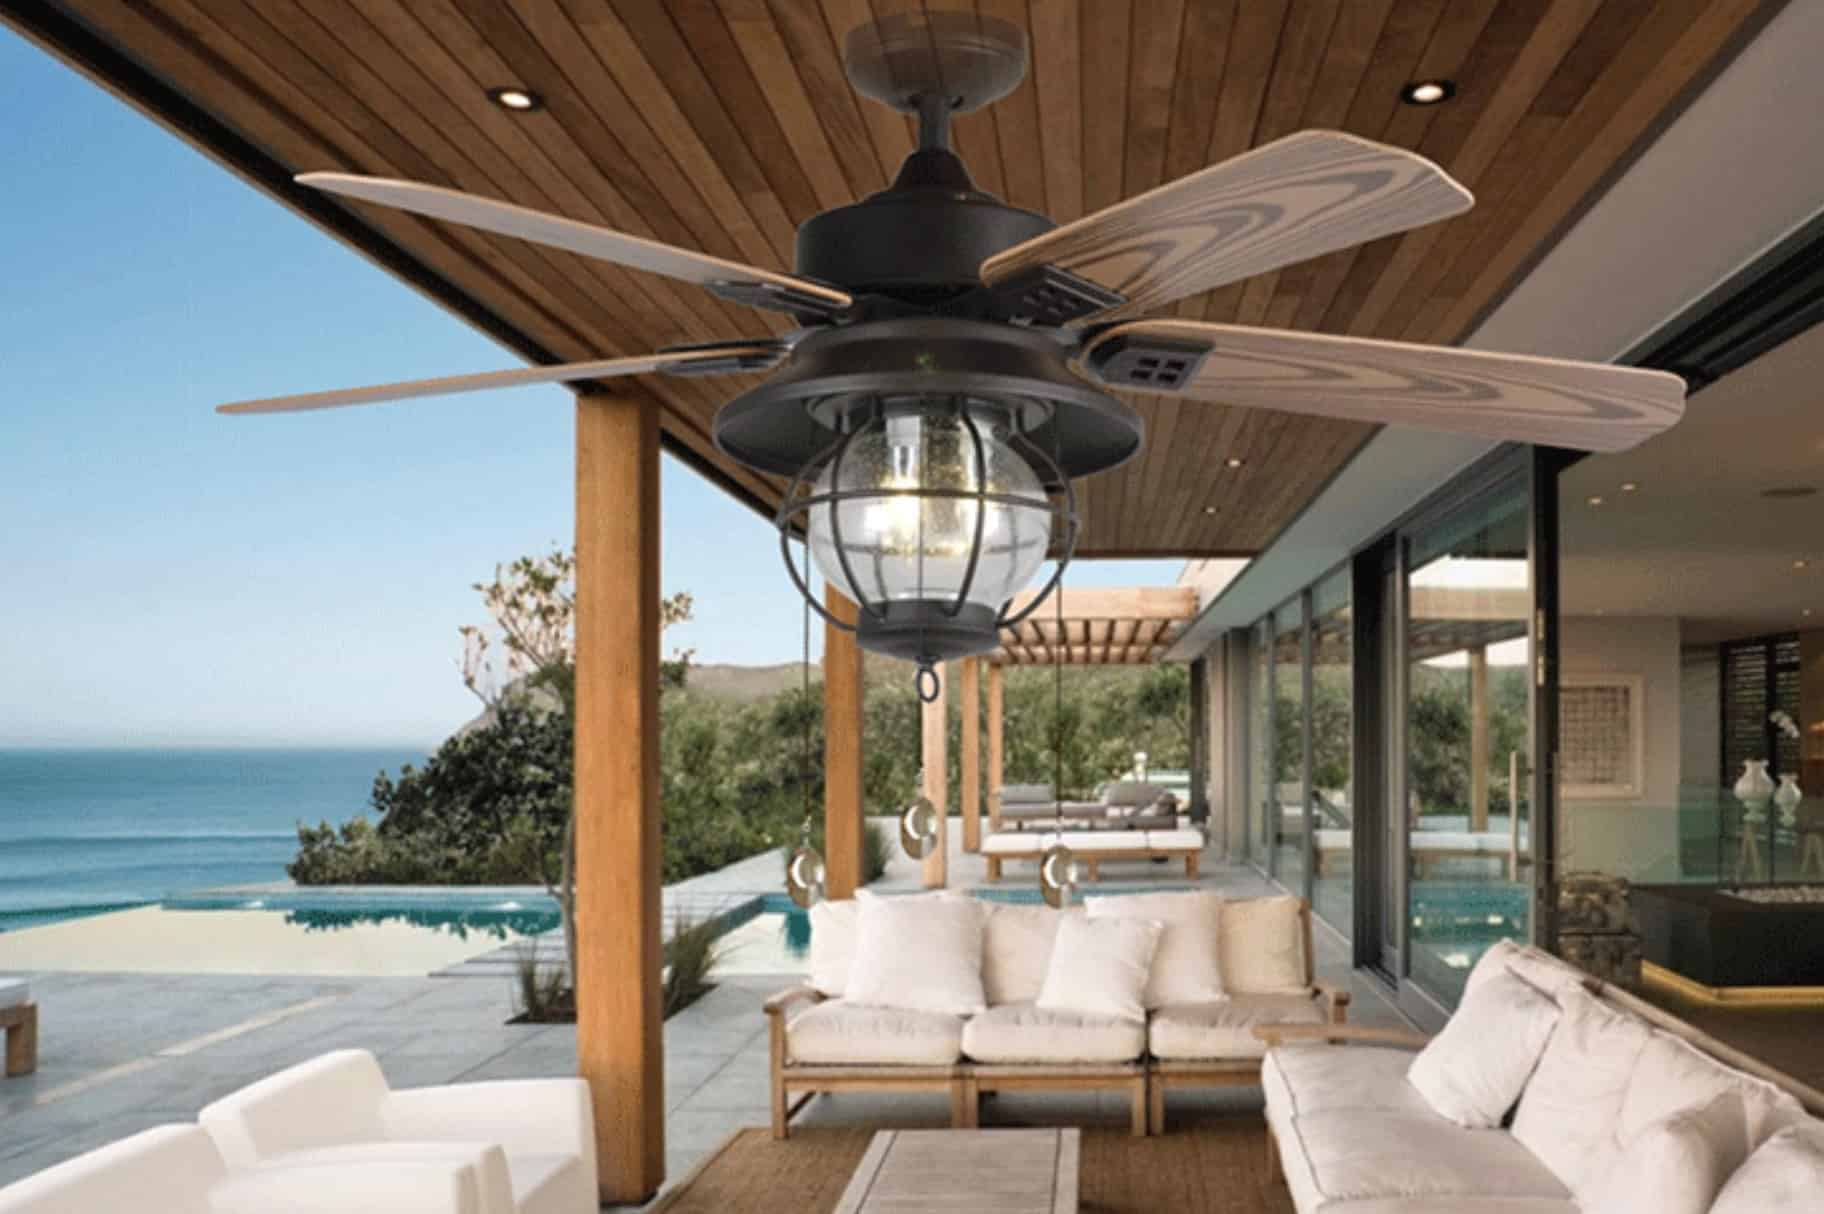 How To Choose The Best Outdoor Ceiling Fan My Chinese Recipes